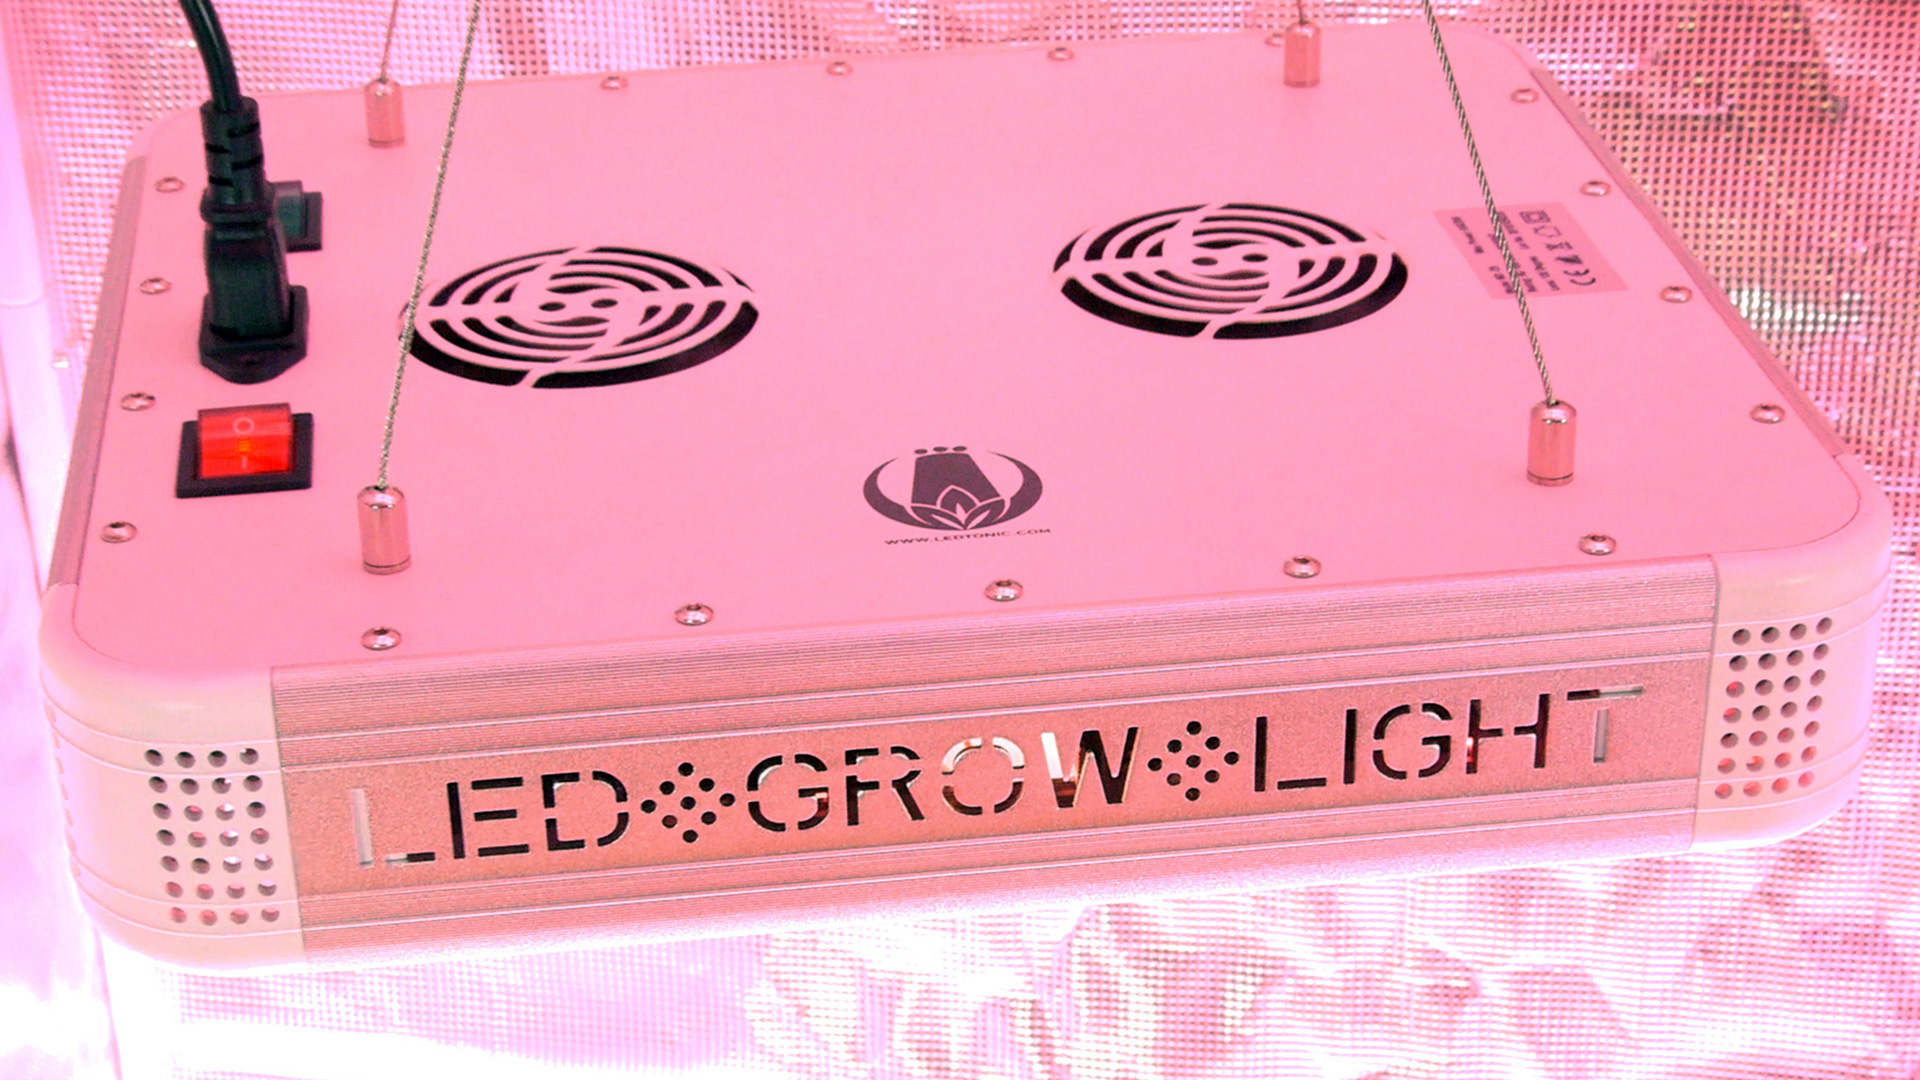 how-to-choose-led-lights-to-grow-cannabis-cannabasics-108-thumbnail-1